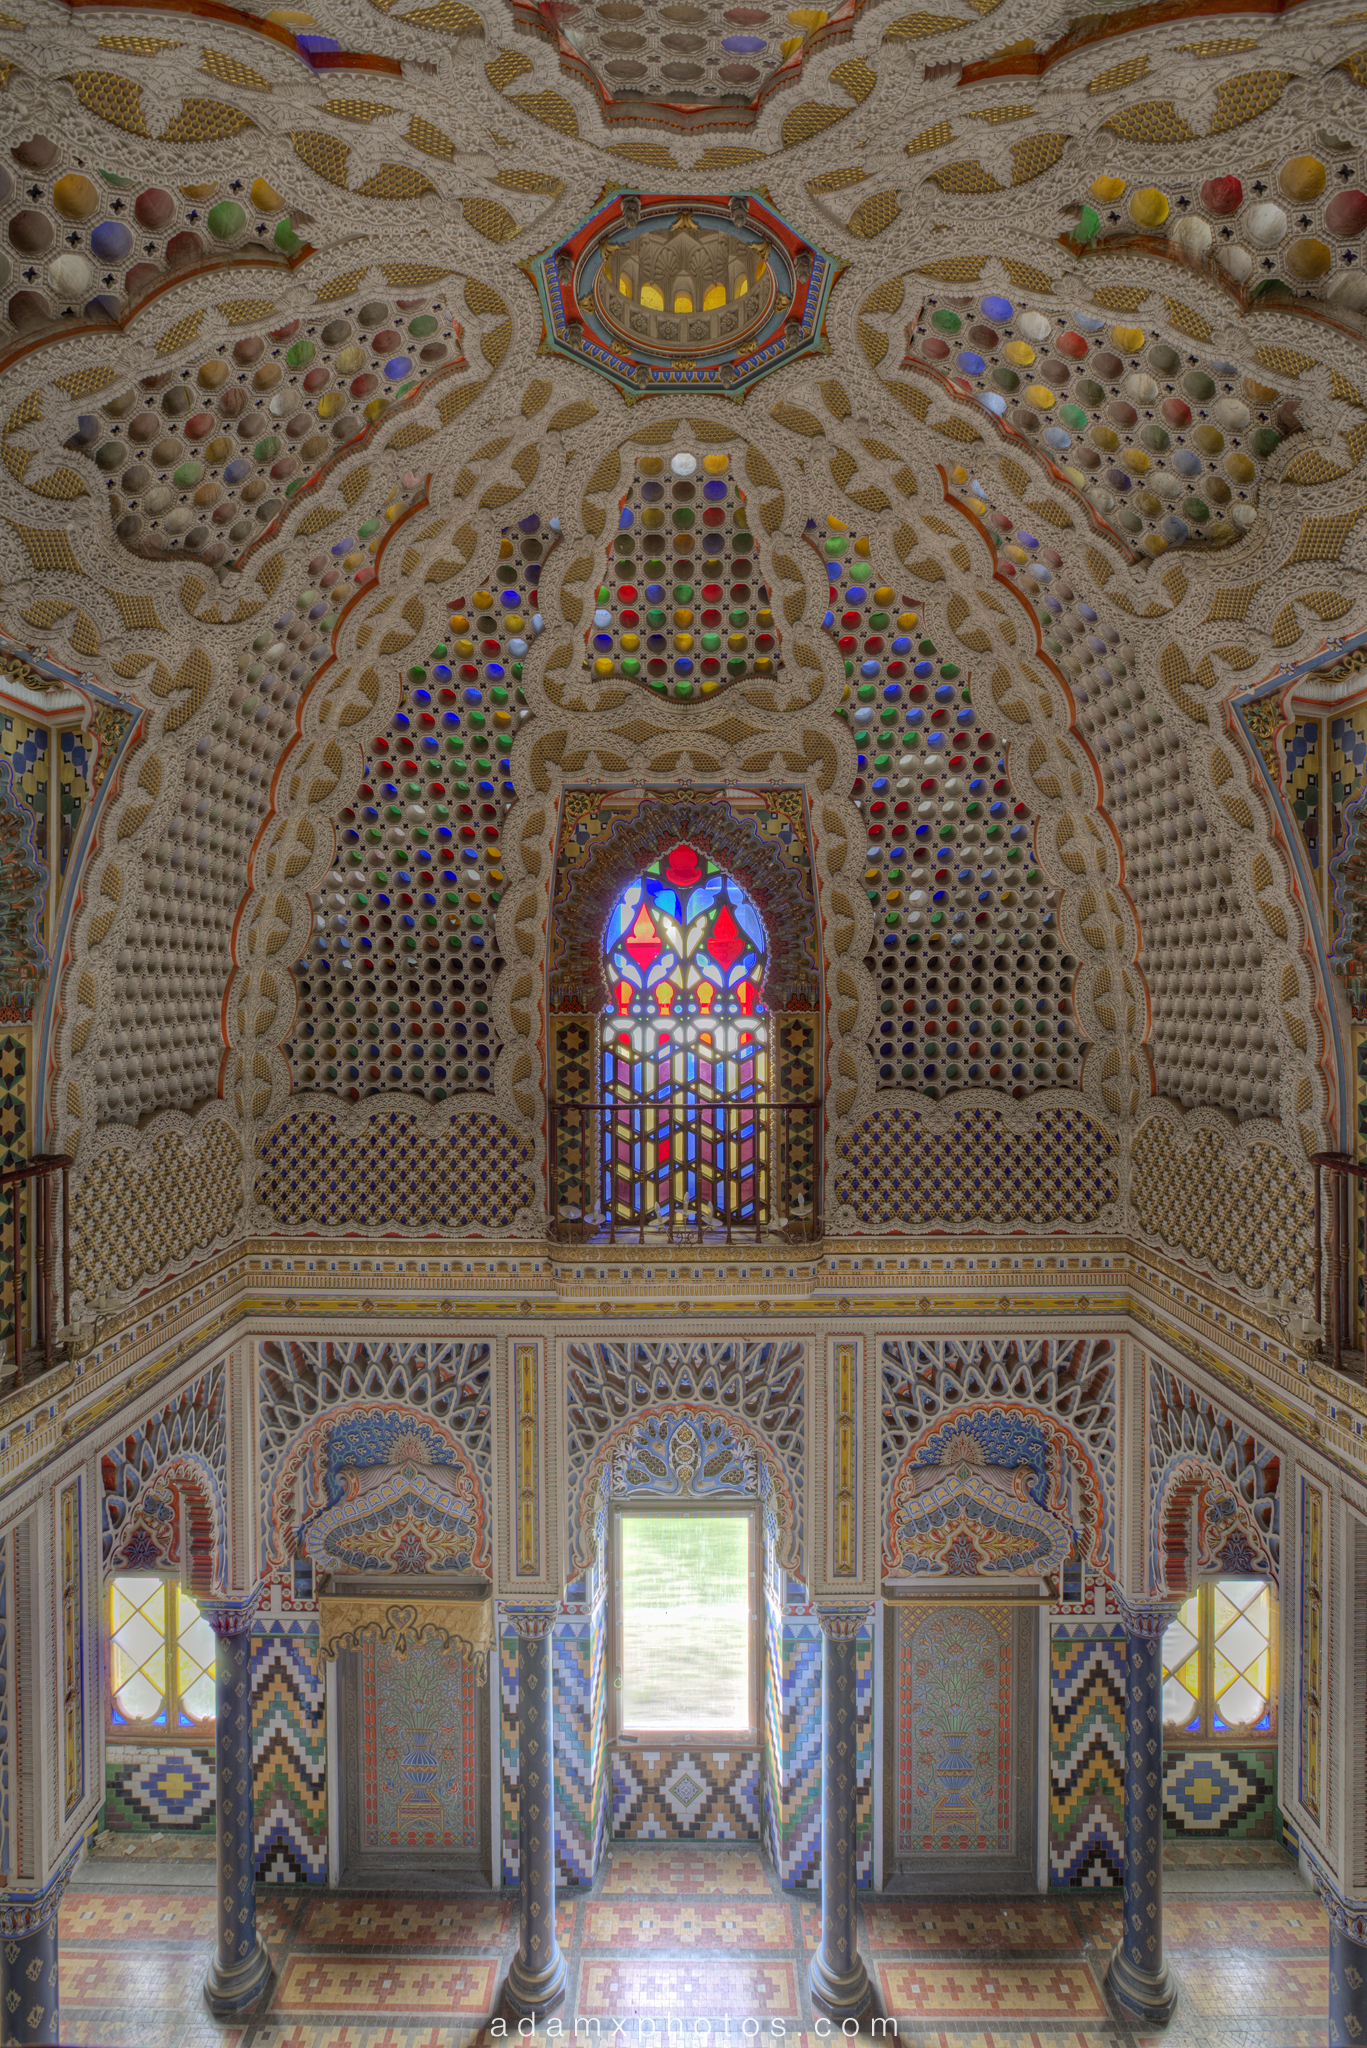 The Hall of Lilies sala dei gigli view from balcony Non Plus Ultra Fairytale Castle of Sammezzano Castello di Sammezzano Urbex Adam X Urban Exploration photo photos report decay detail UE abandoned Ornate Moorish tiling tiled derelict unused empty disused decay decayed decaying grimy grime